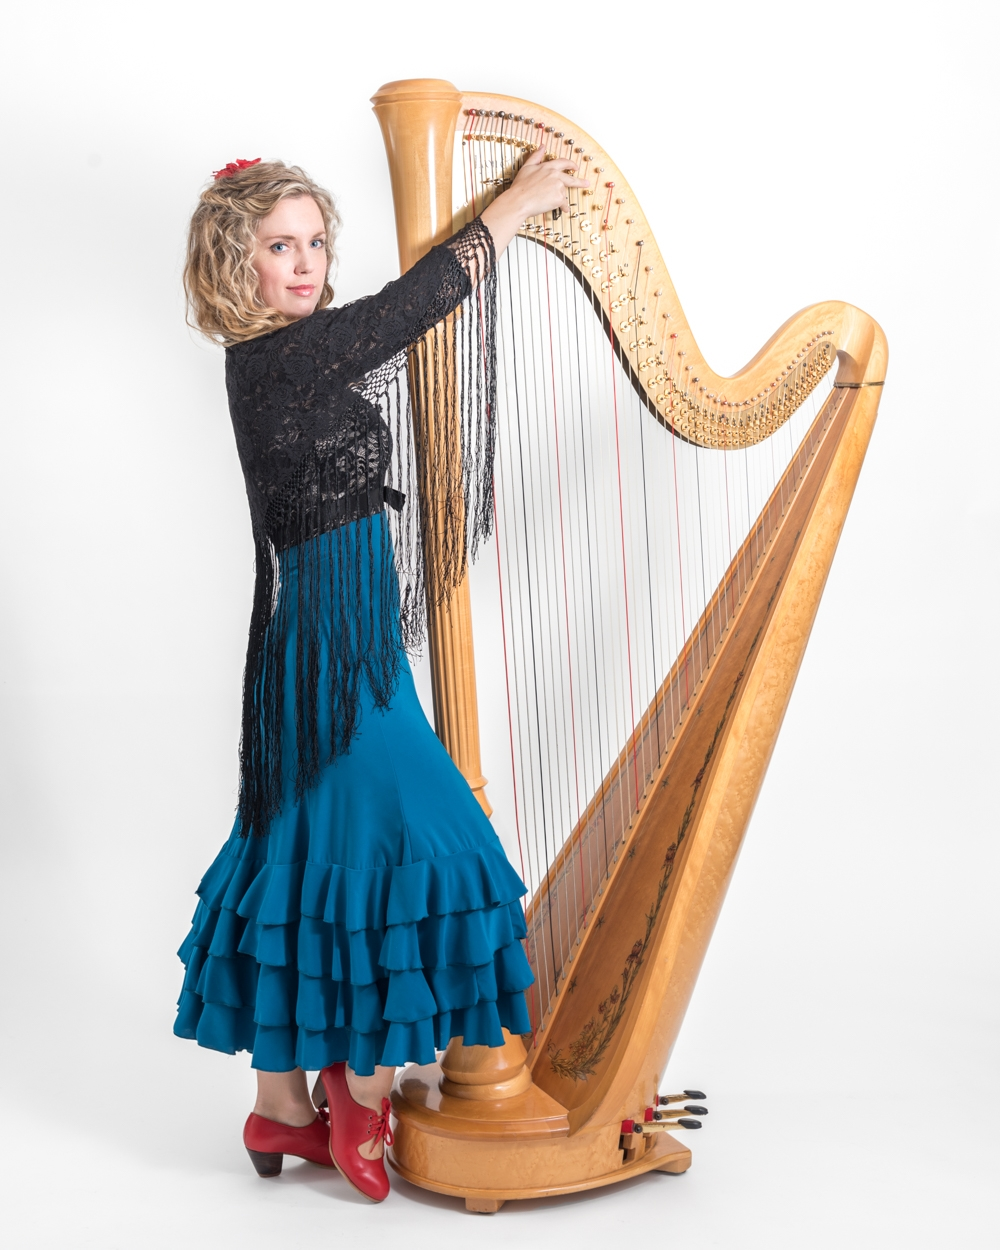 091416_Harpist-258-Edit